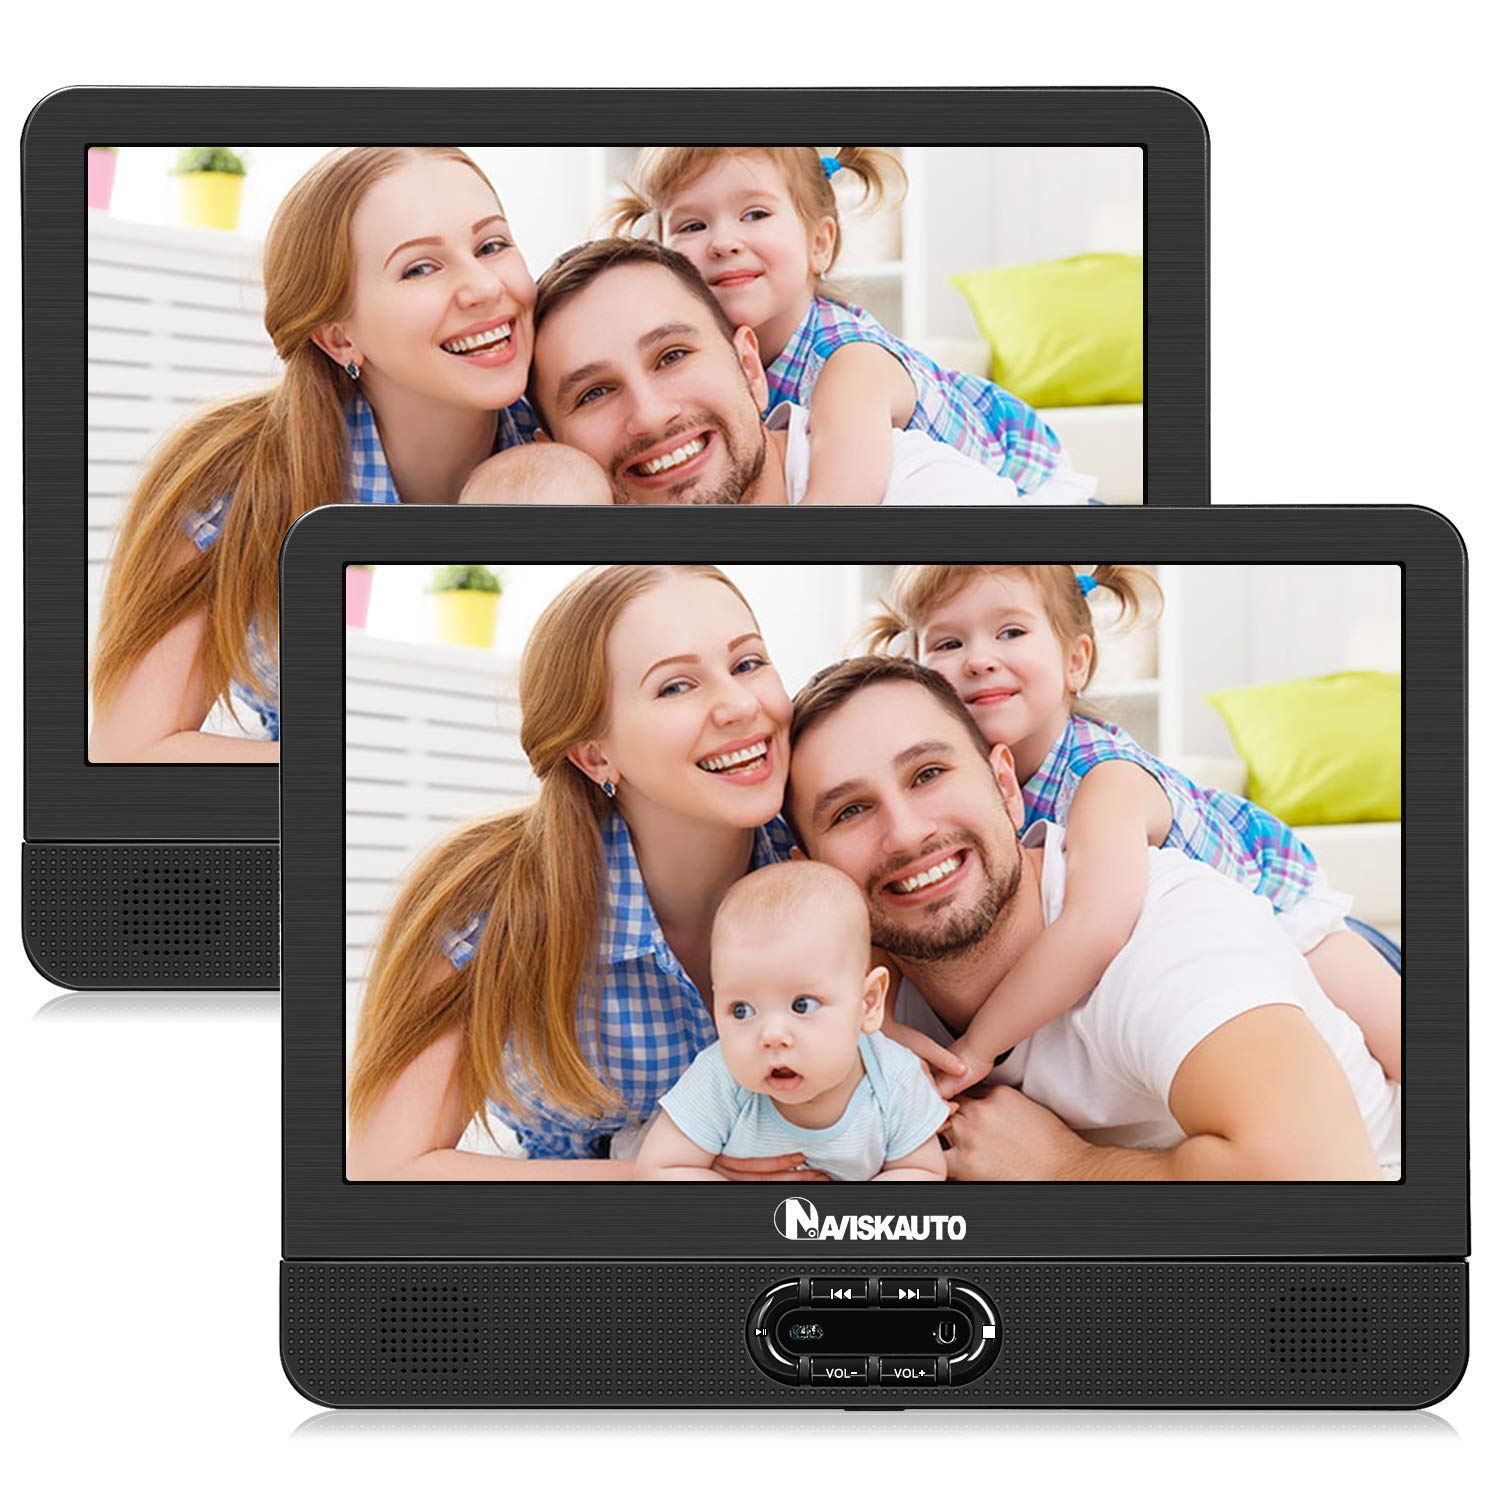 NAVISKAUTO 12'' Portable Dual Screen DVD Player for Car with Built-in Rechargeable Battery and Last Memory, Supports USB/SD Card Playback by NAVISKAUTO